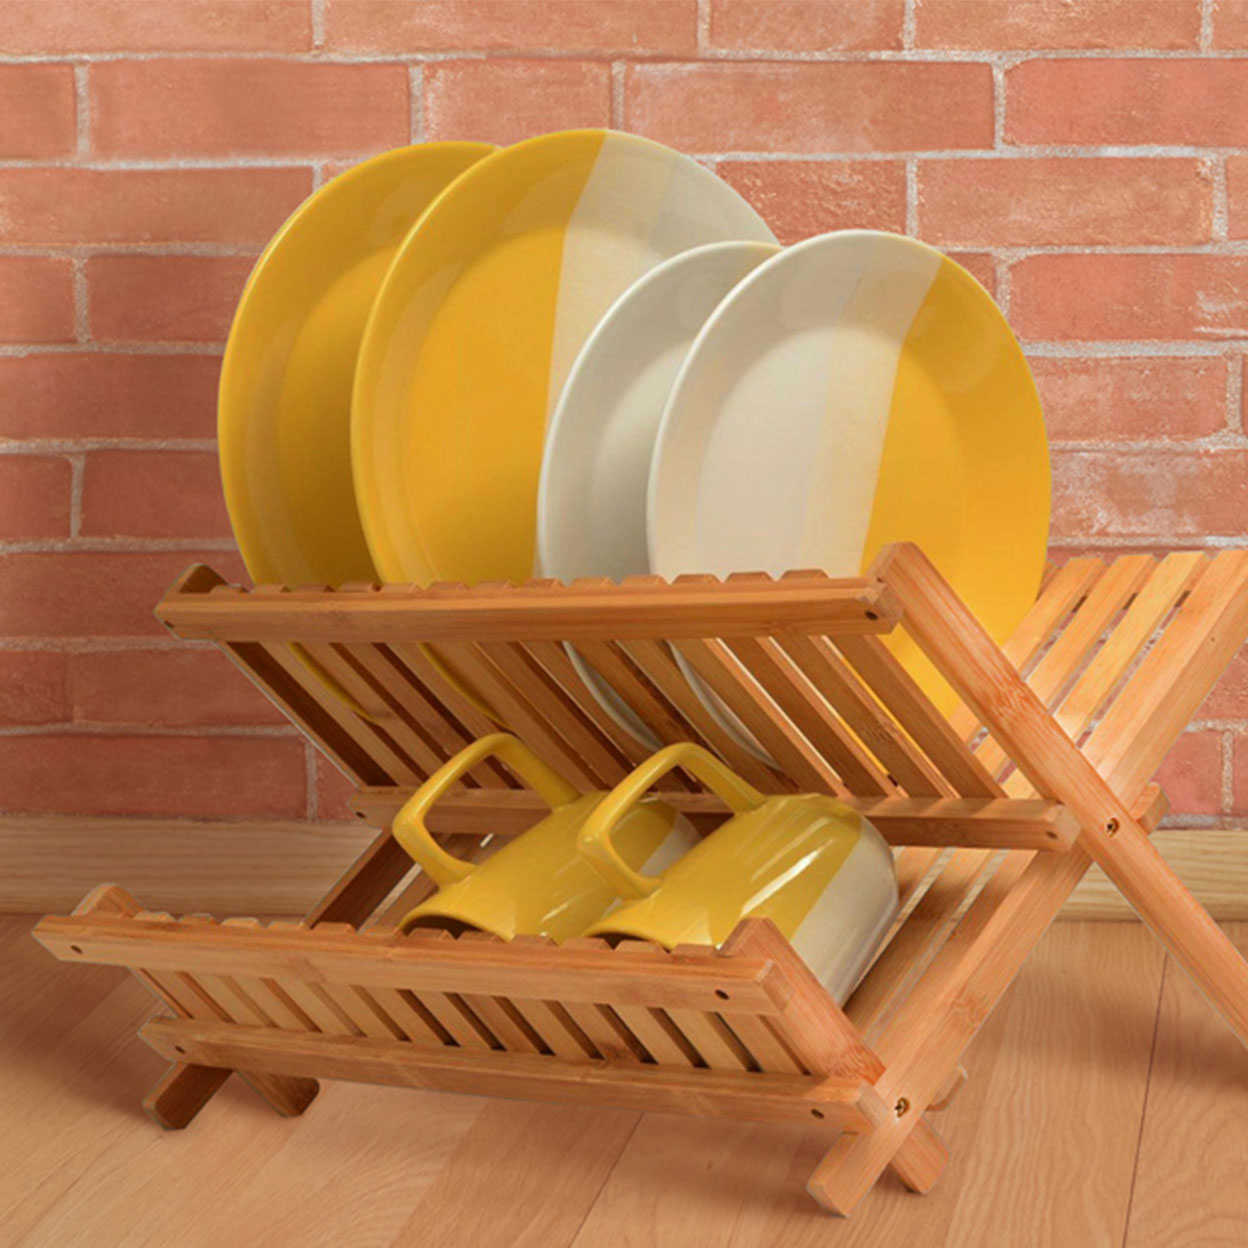 Dish Drying Rack Made Of 100% All Natural Premium Bamboo Folding Dish Drainer, Kitchen Utensil Holder, Designed By: Bambusi 59b9aaa12a00e46d944912ae